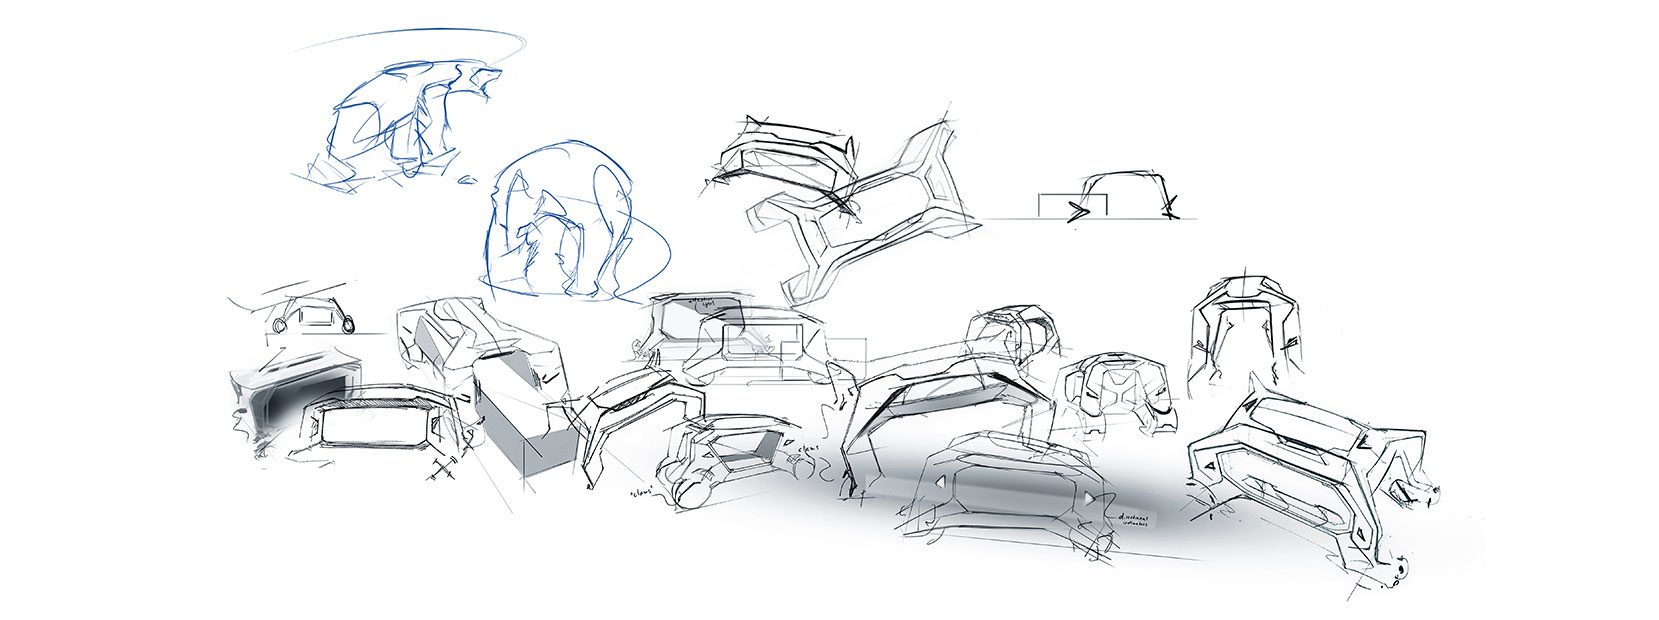 T.A.D., Toyota Automated Delivery Concept Design Sketches